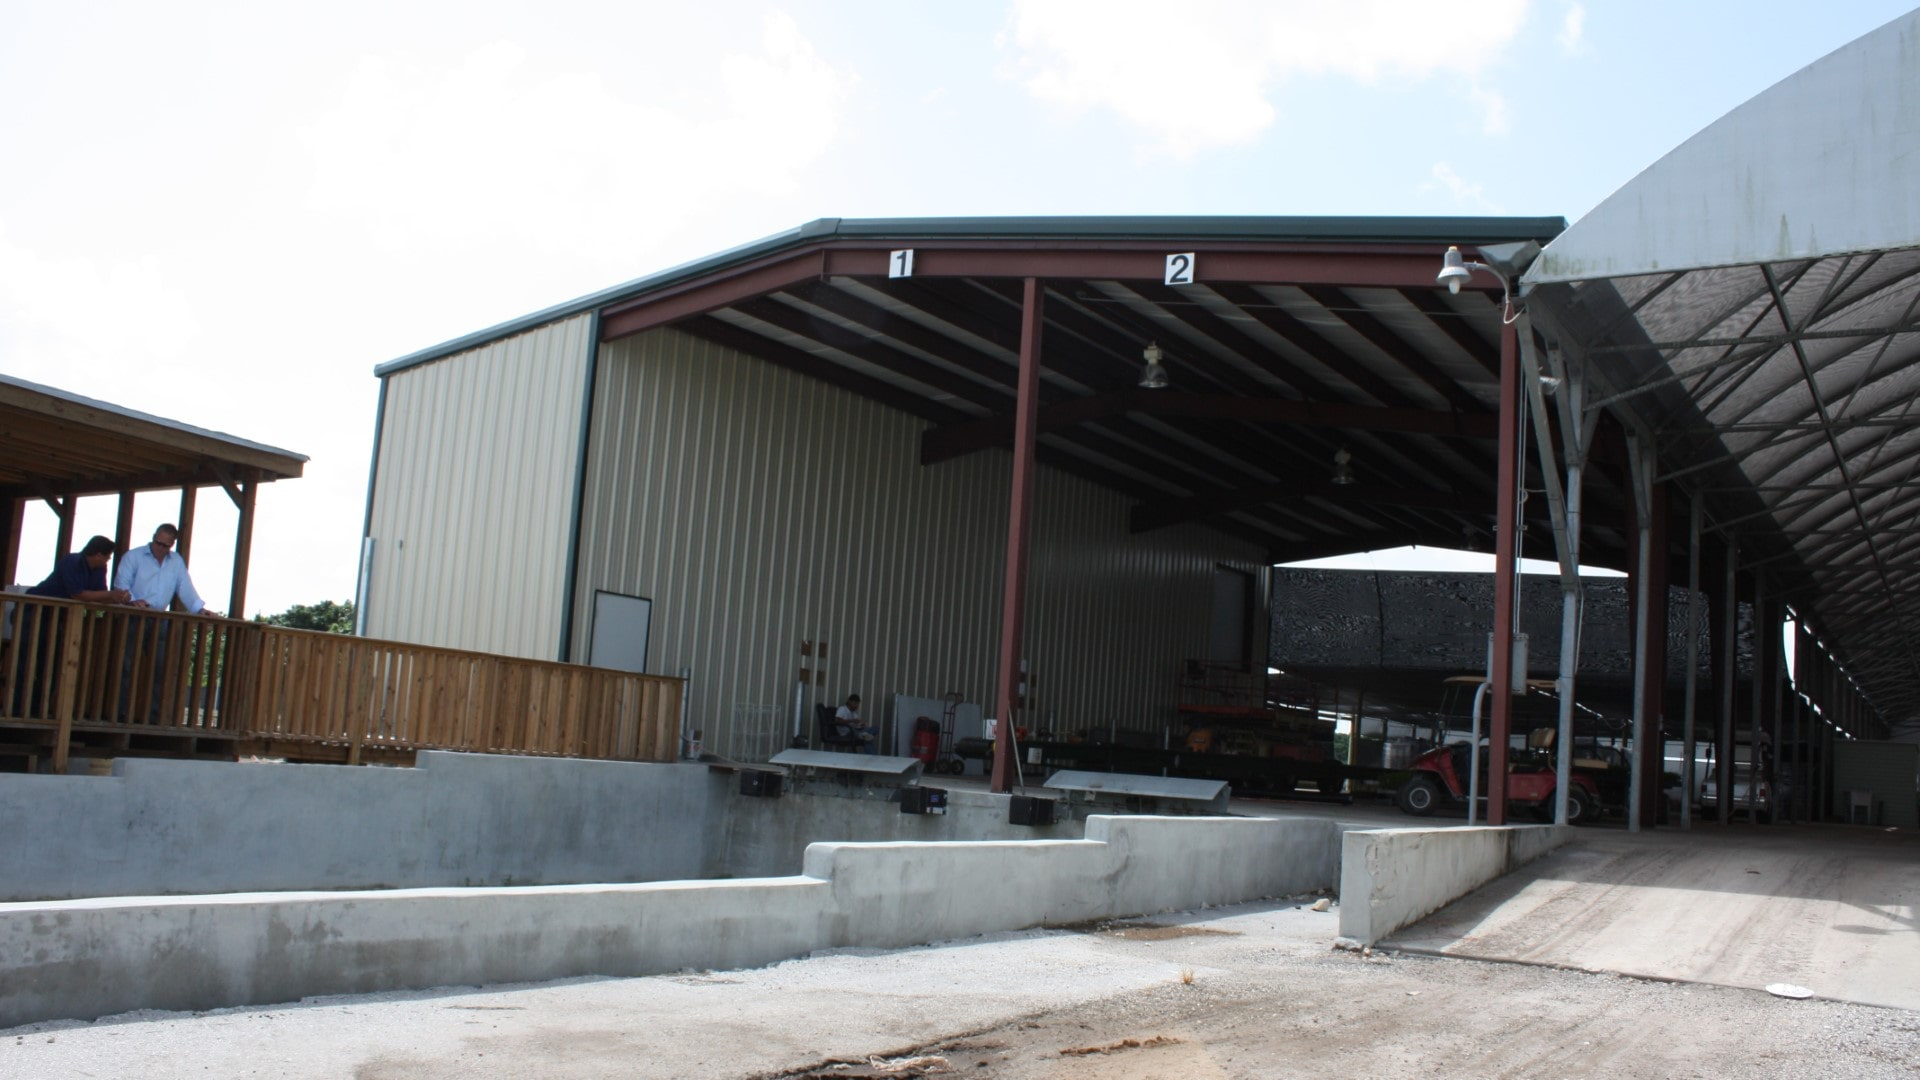 Partially open steel agricultural building with loading dock on gable end.